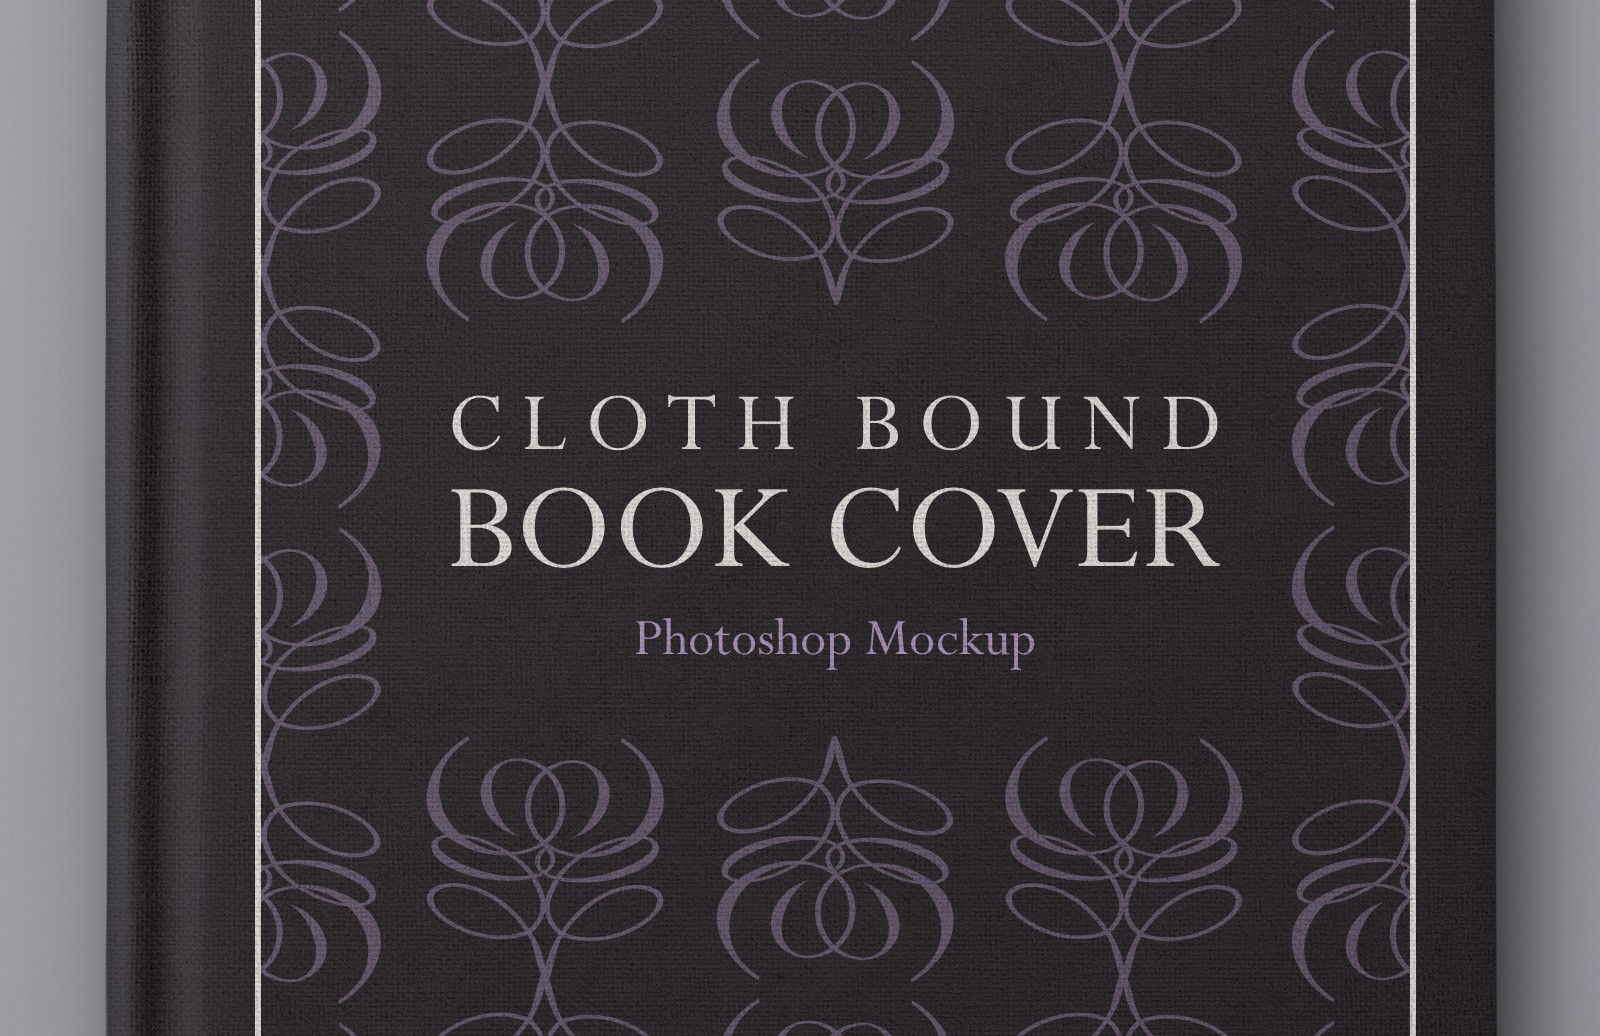 Fabric Book Cover Template : Cloth bound book cover mockup — medialoot